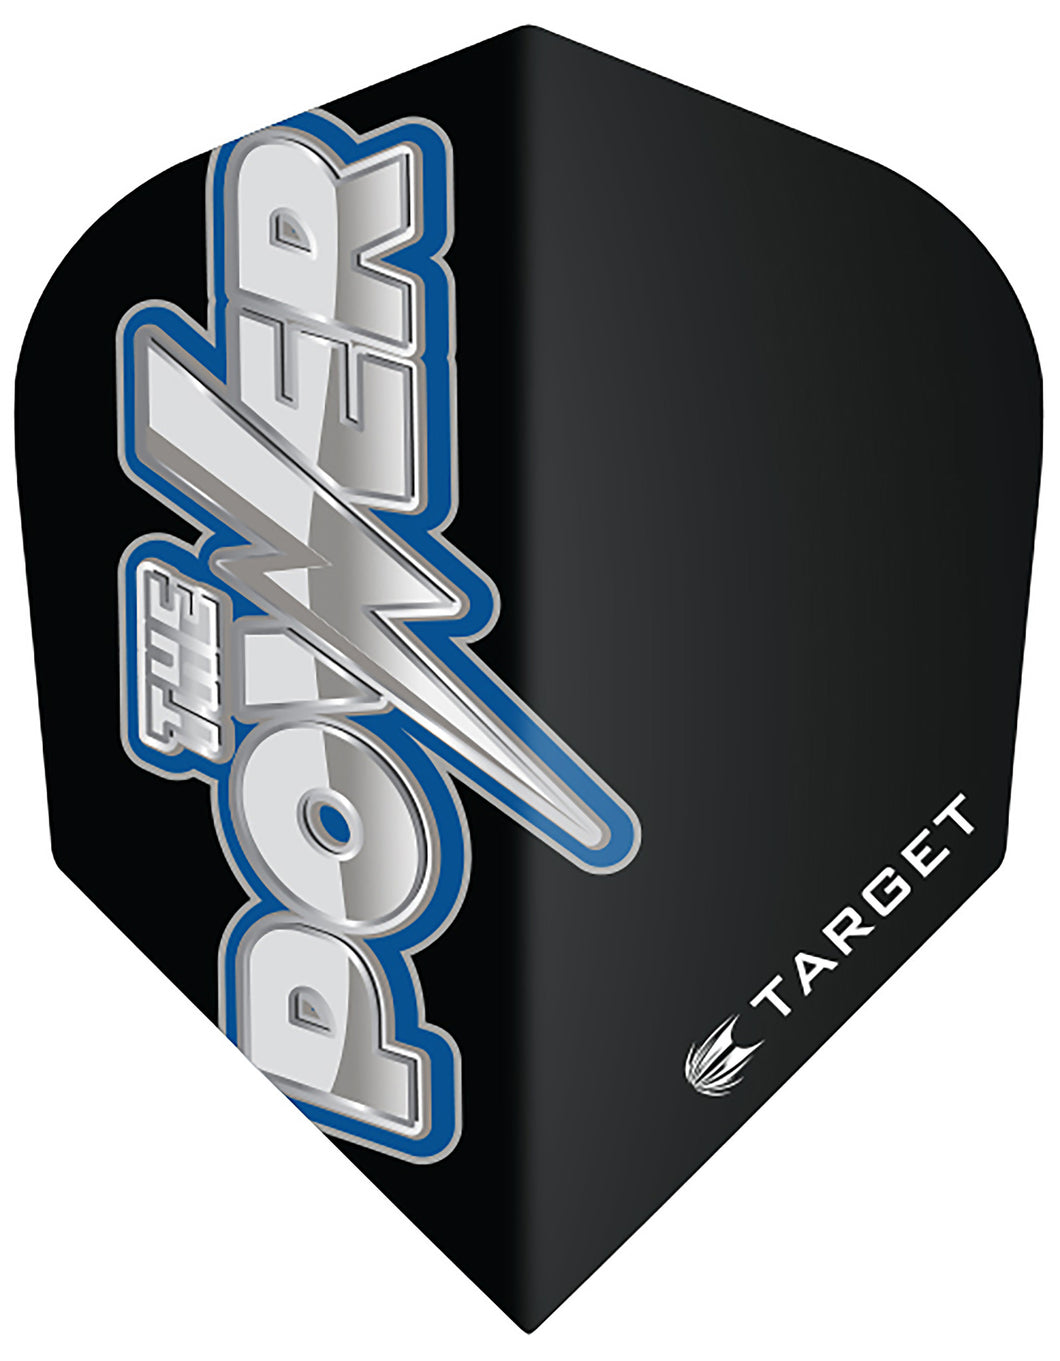 The Power Target Dart Flights